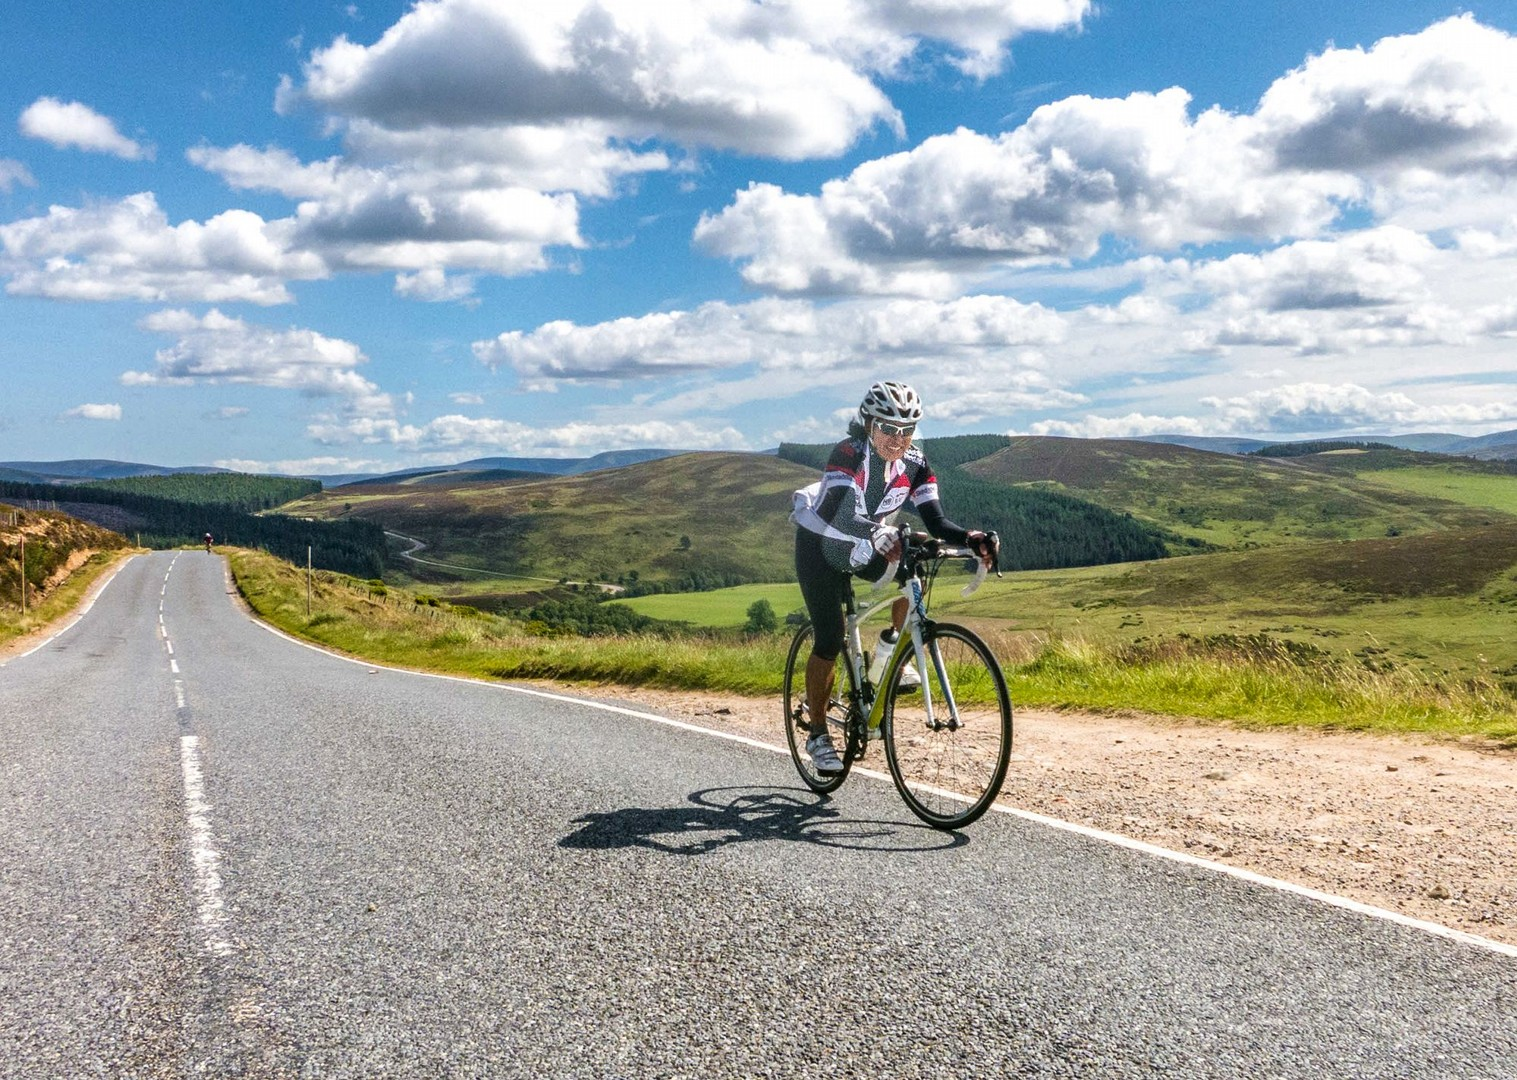 lands-end-to-john-ogroats-16-day-guided-cycling-holiday.jpg - UK - Land's End to John O'Groats Classic (16 days) - Guided Road Cycling Holiday - Road Cycling